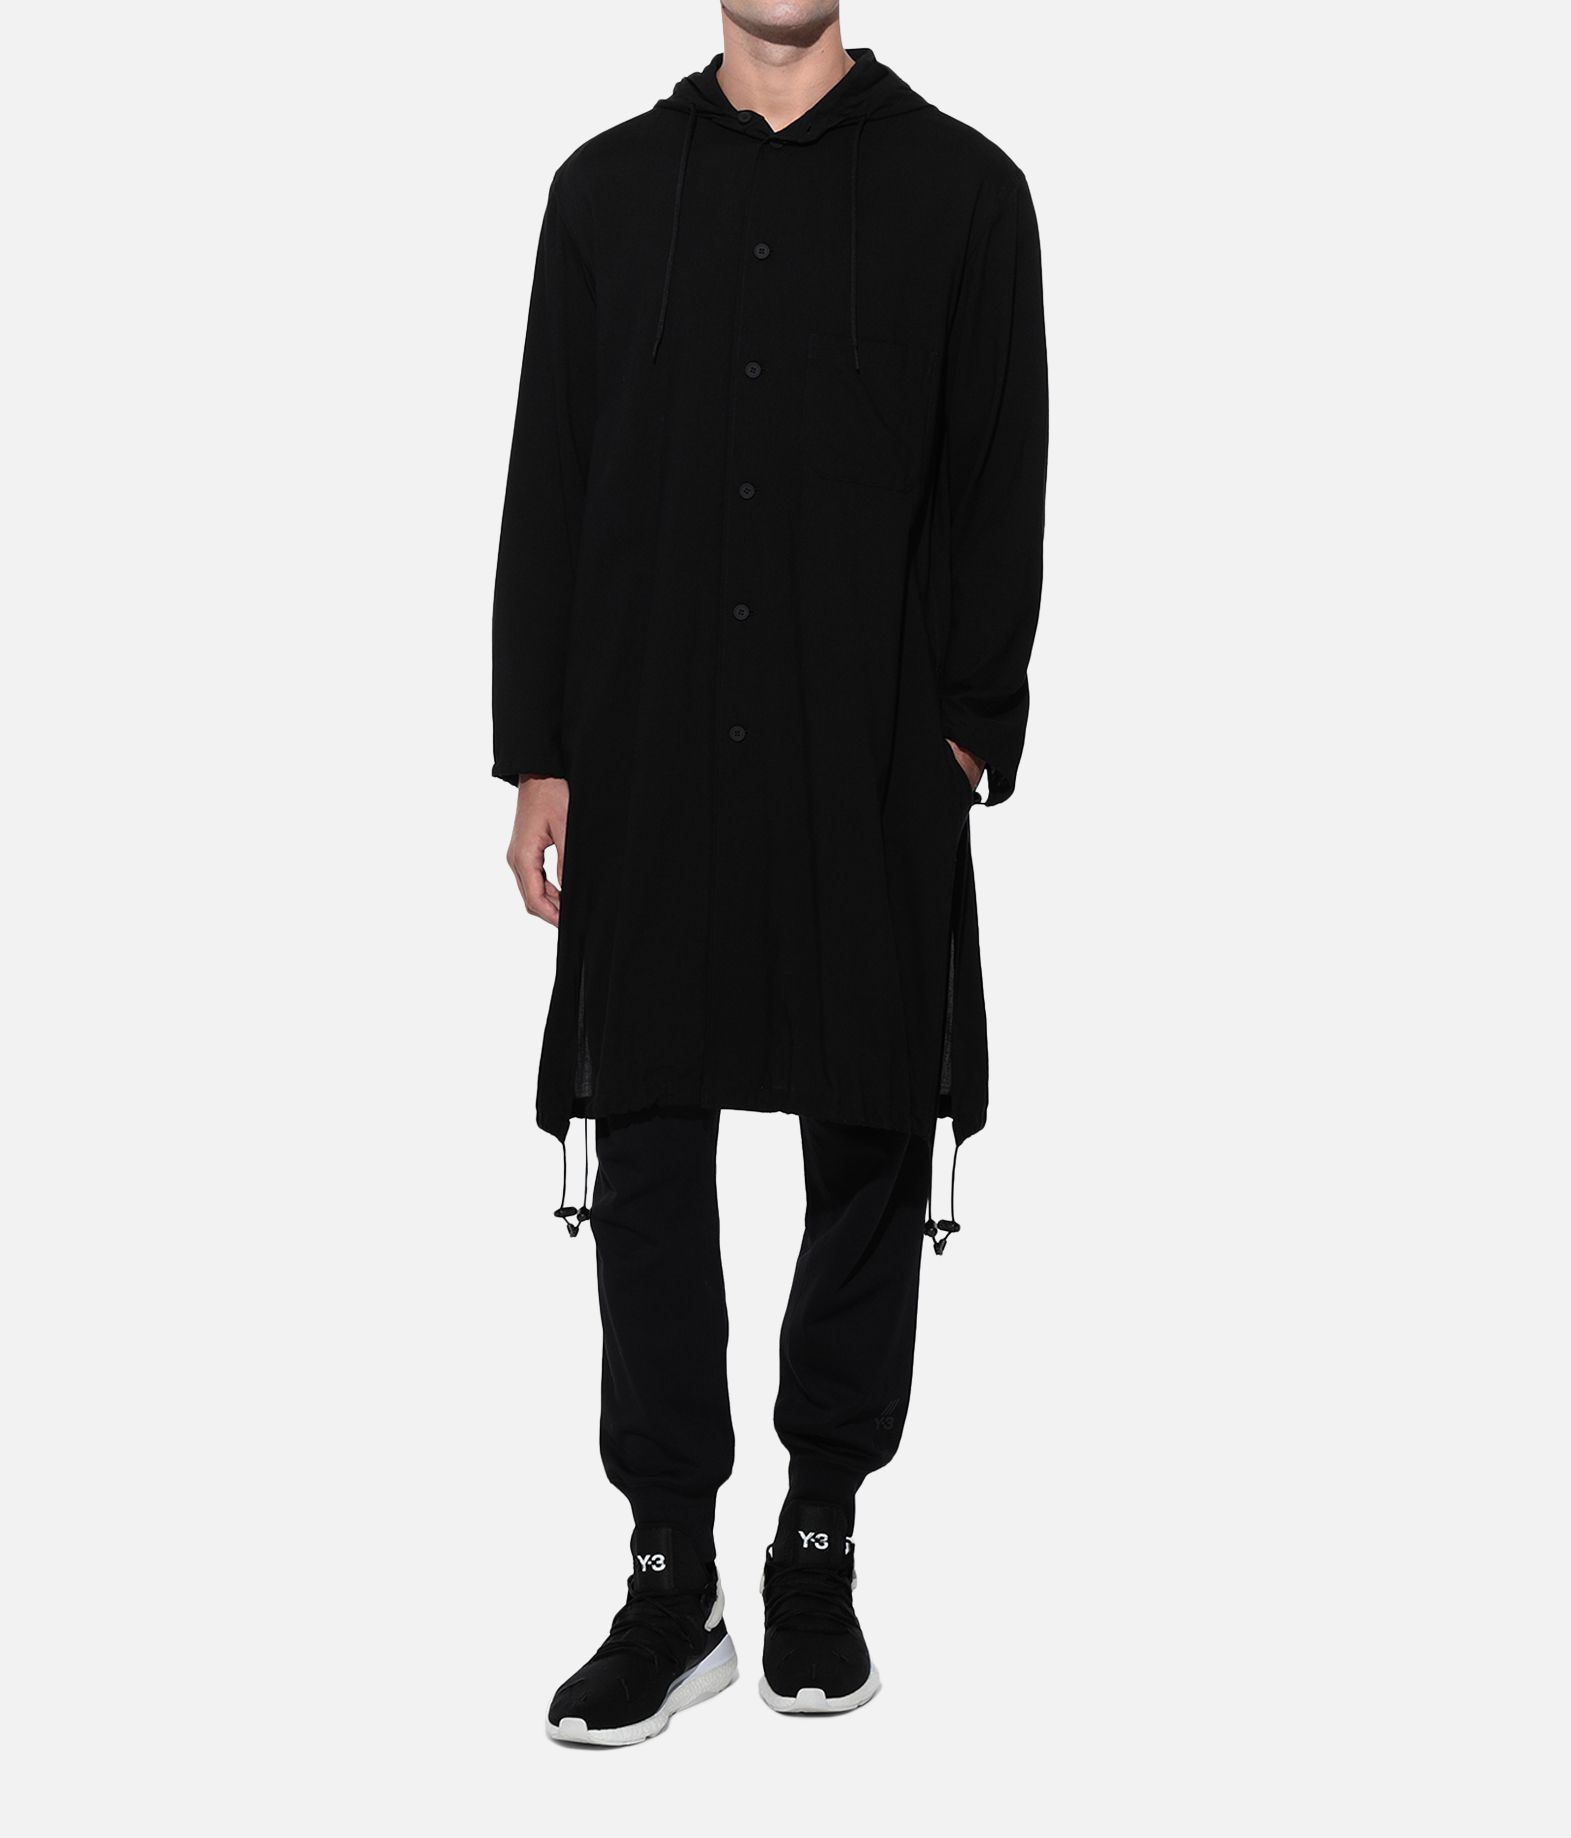 Y-3 Y-3 Hooded Long Shirt Long sleeve shirt Man a